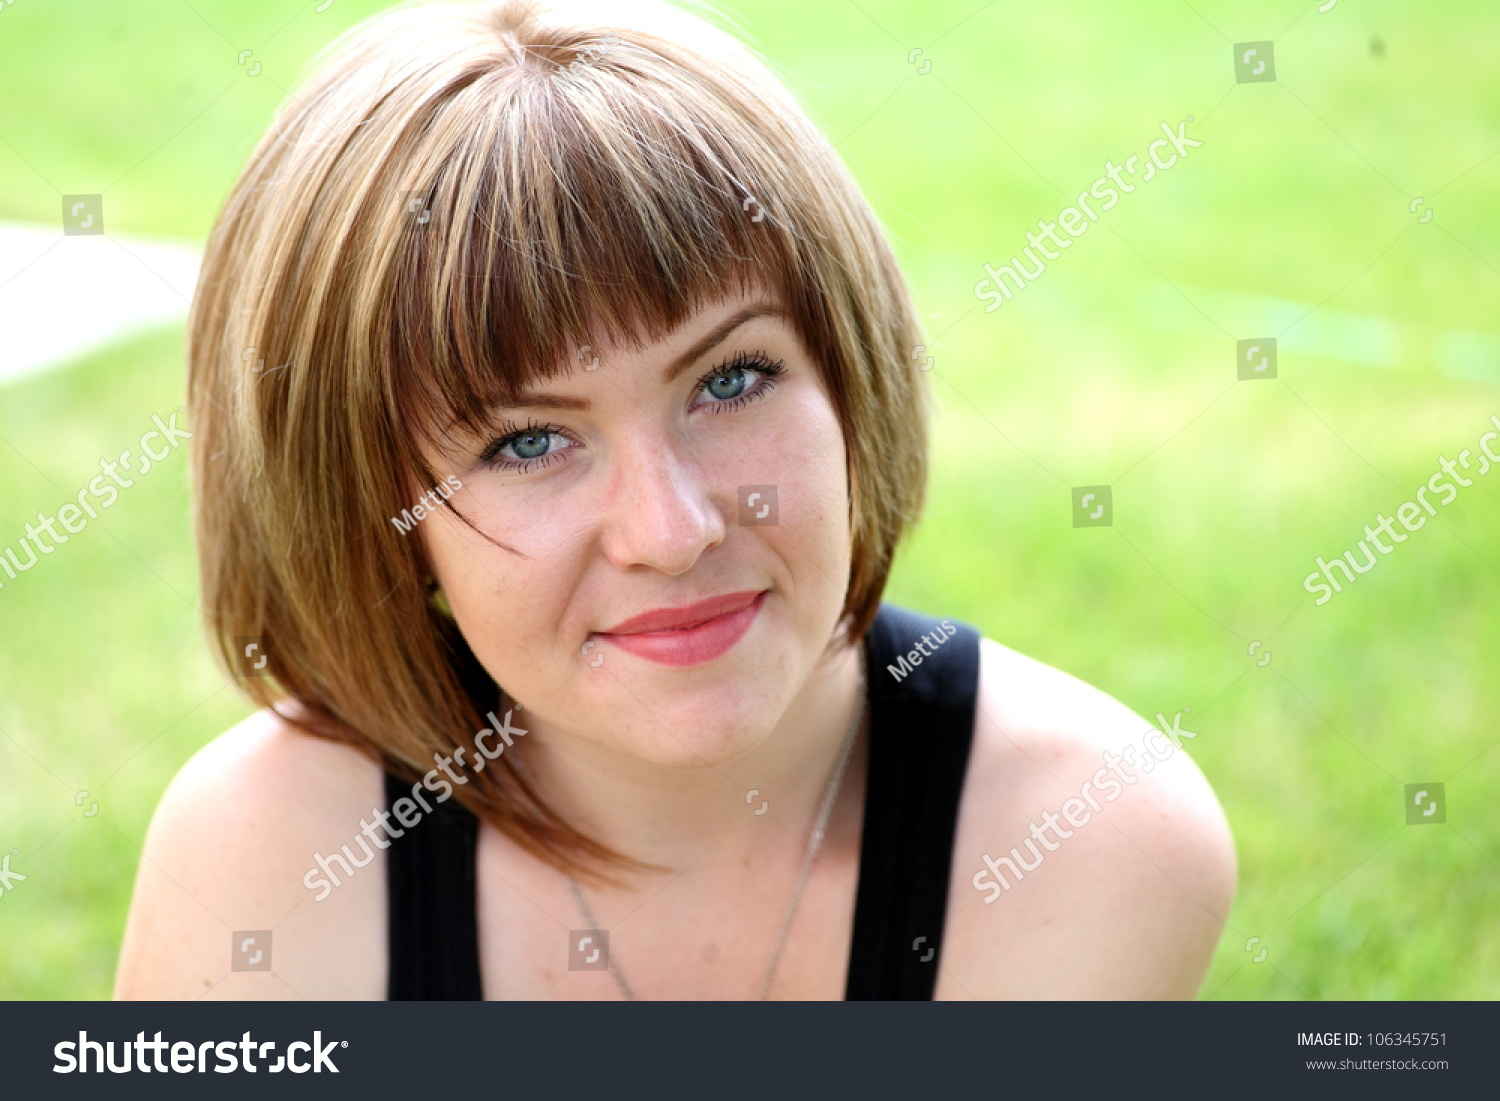 Closeup portrait of a happy blonde woman looking at camera against fresh green grass ,head and shoulders shot, young woman in town park